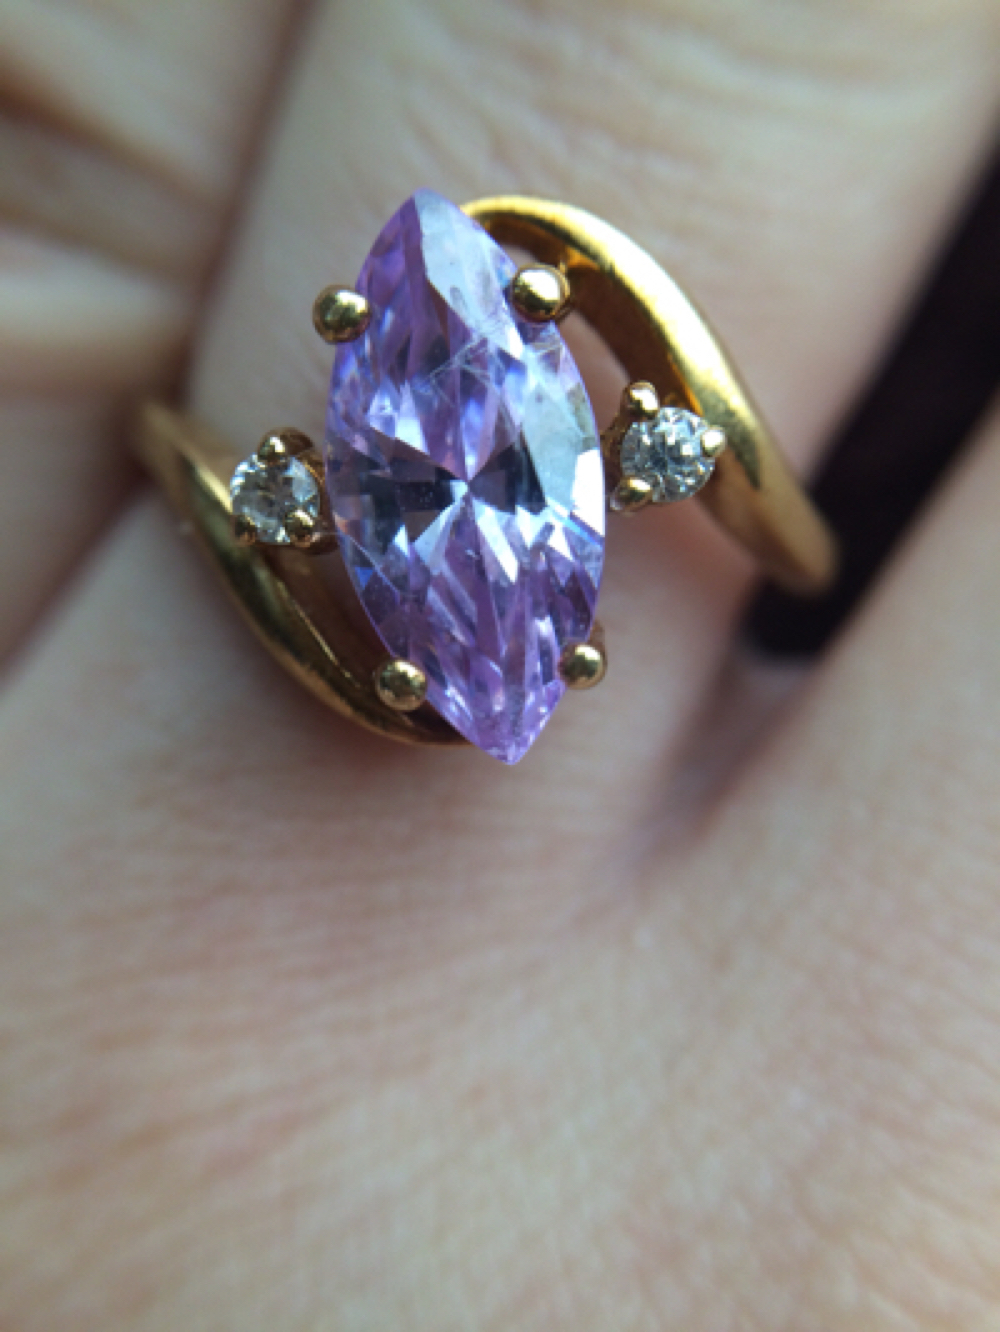 Vintage 10k yellow gold bypass ring with CZ